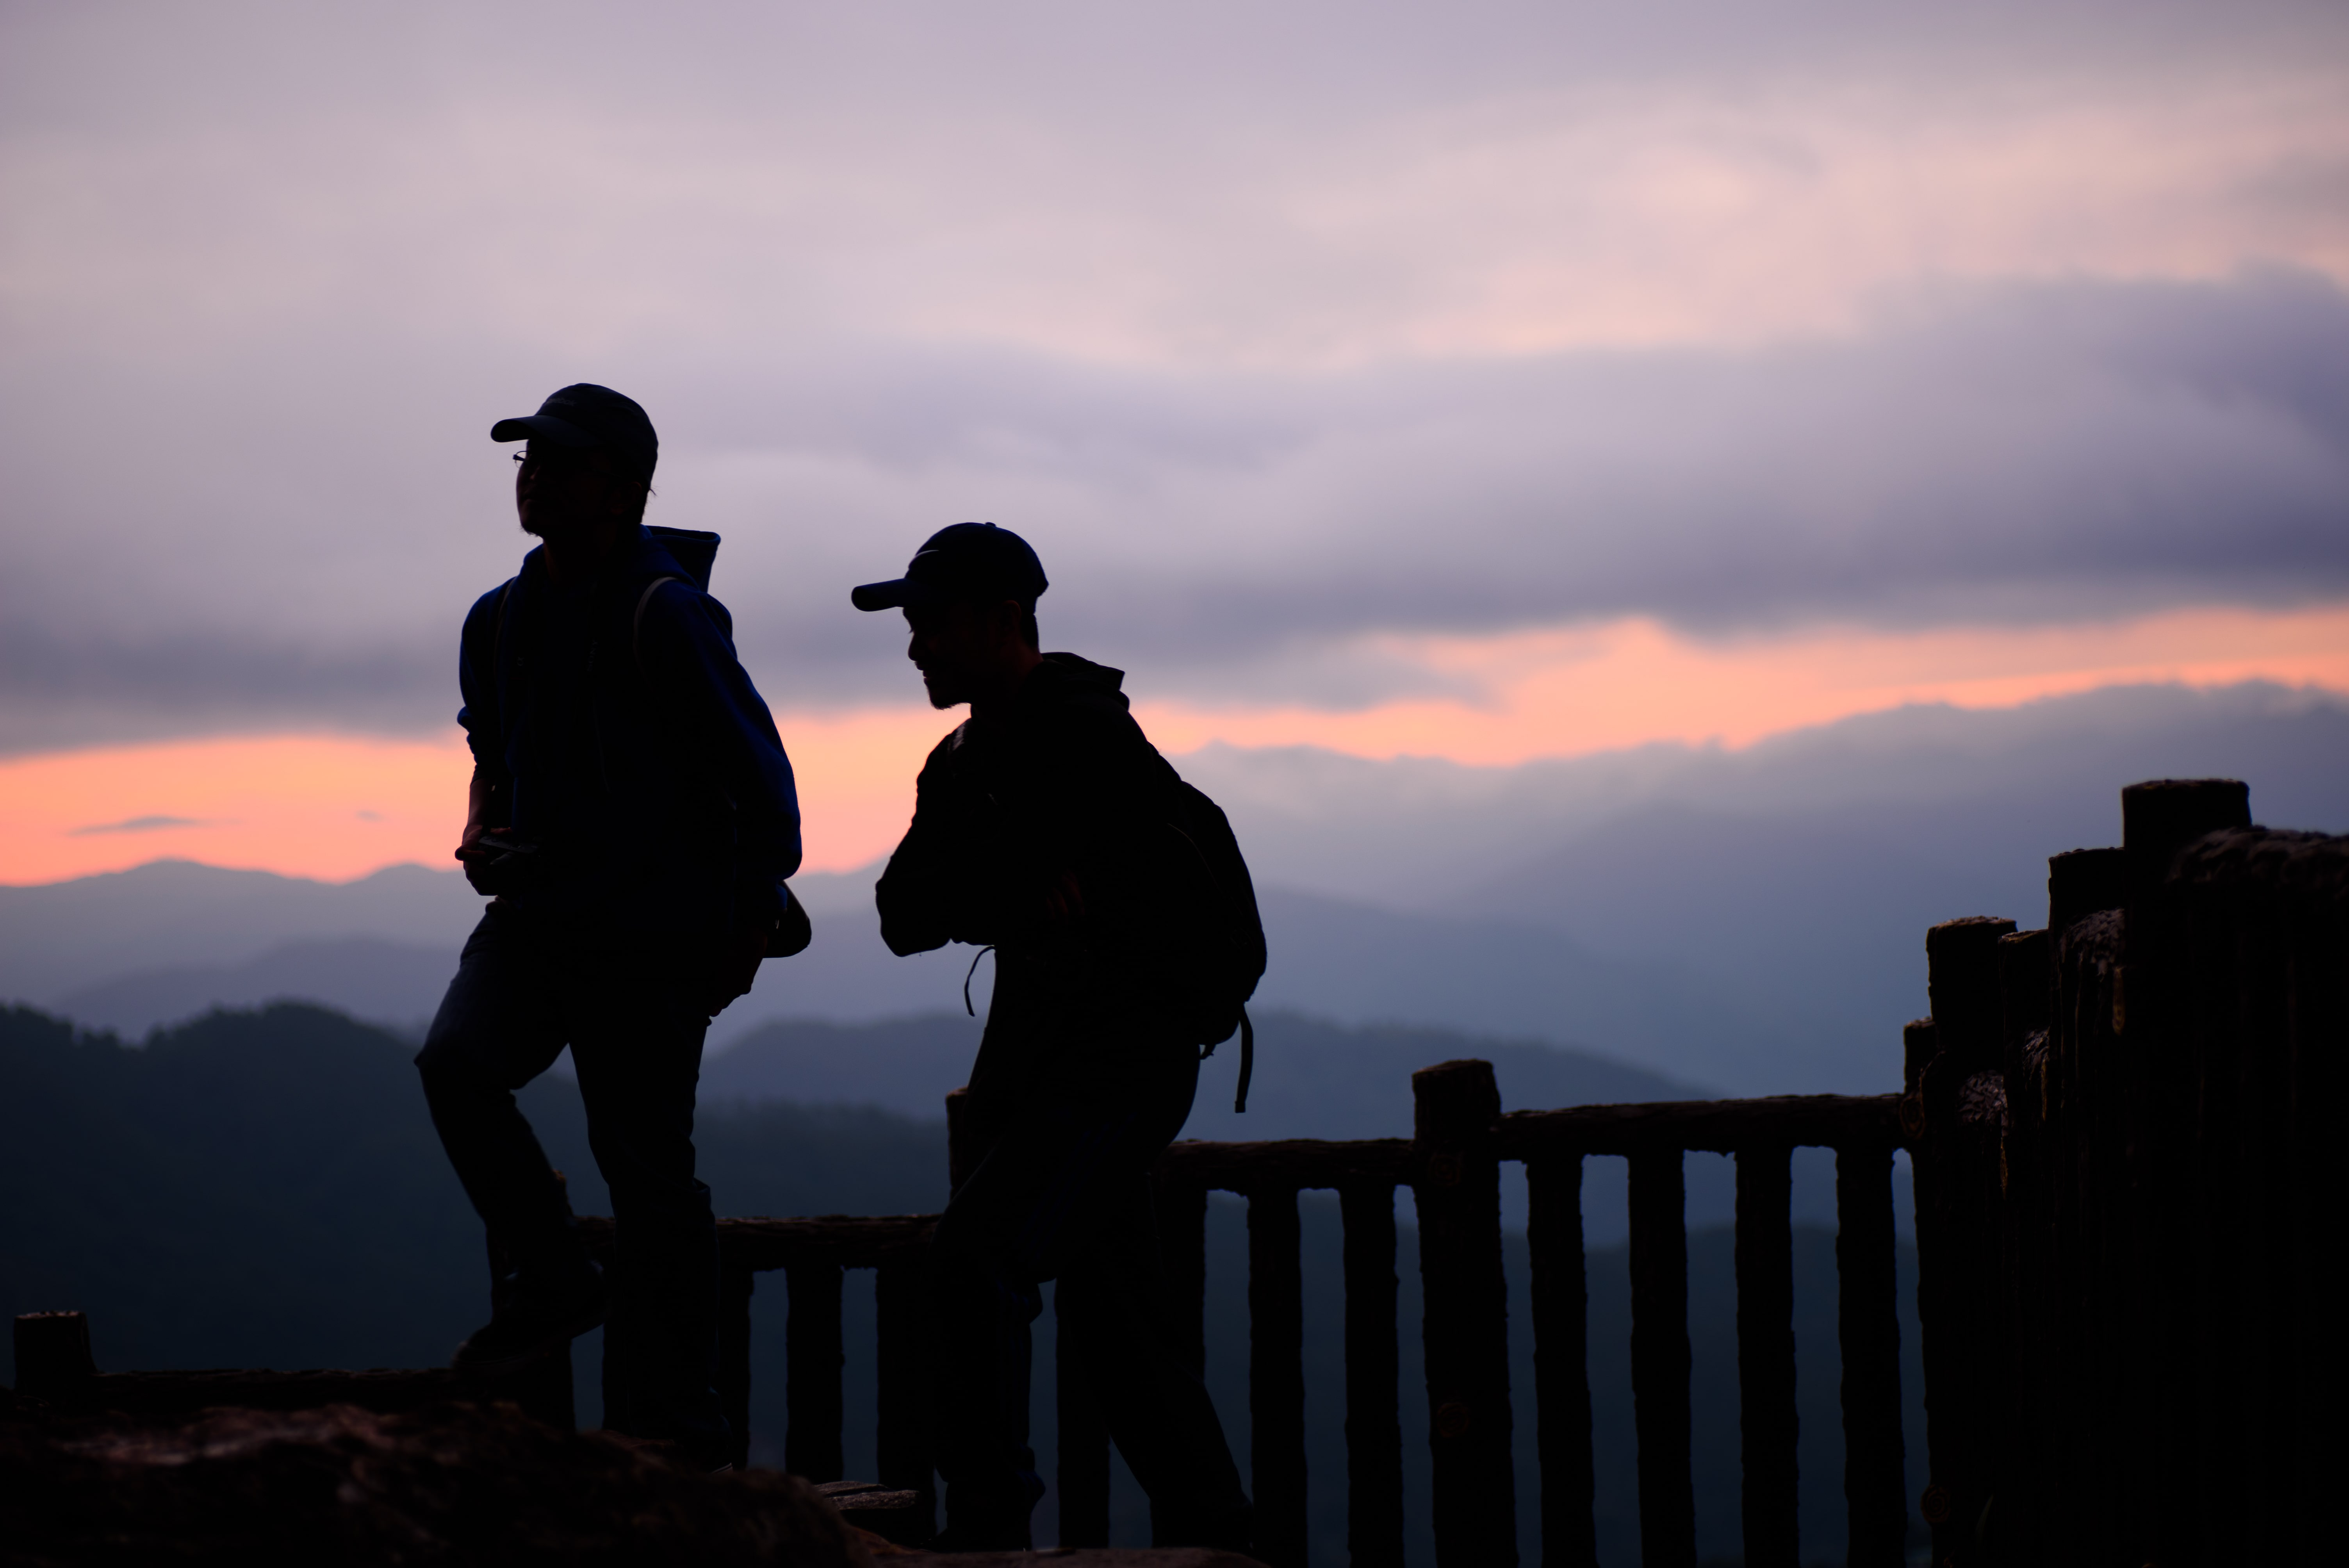 Two people waiting for the sunrise in Mines View Park in Baguio